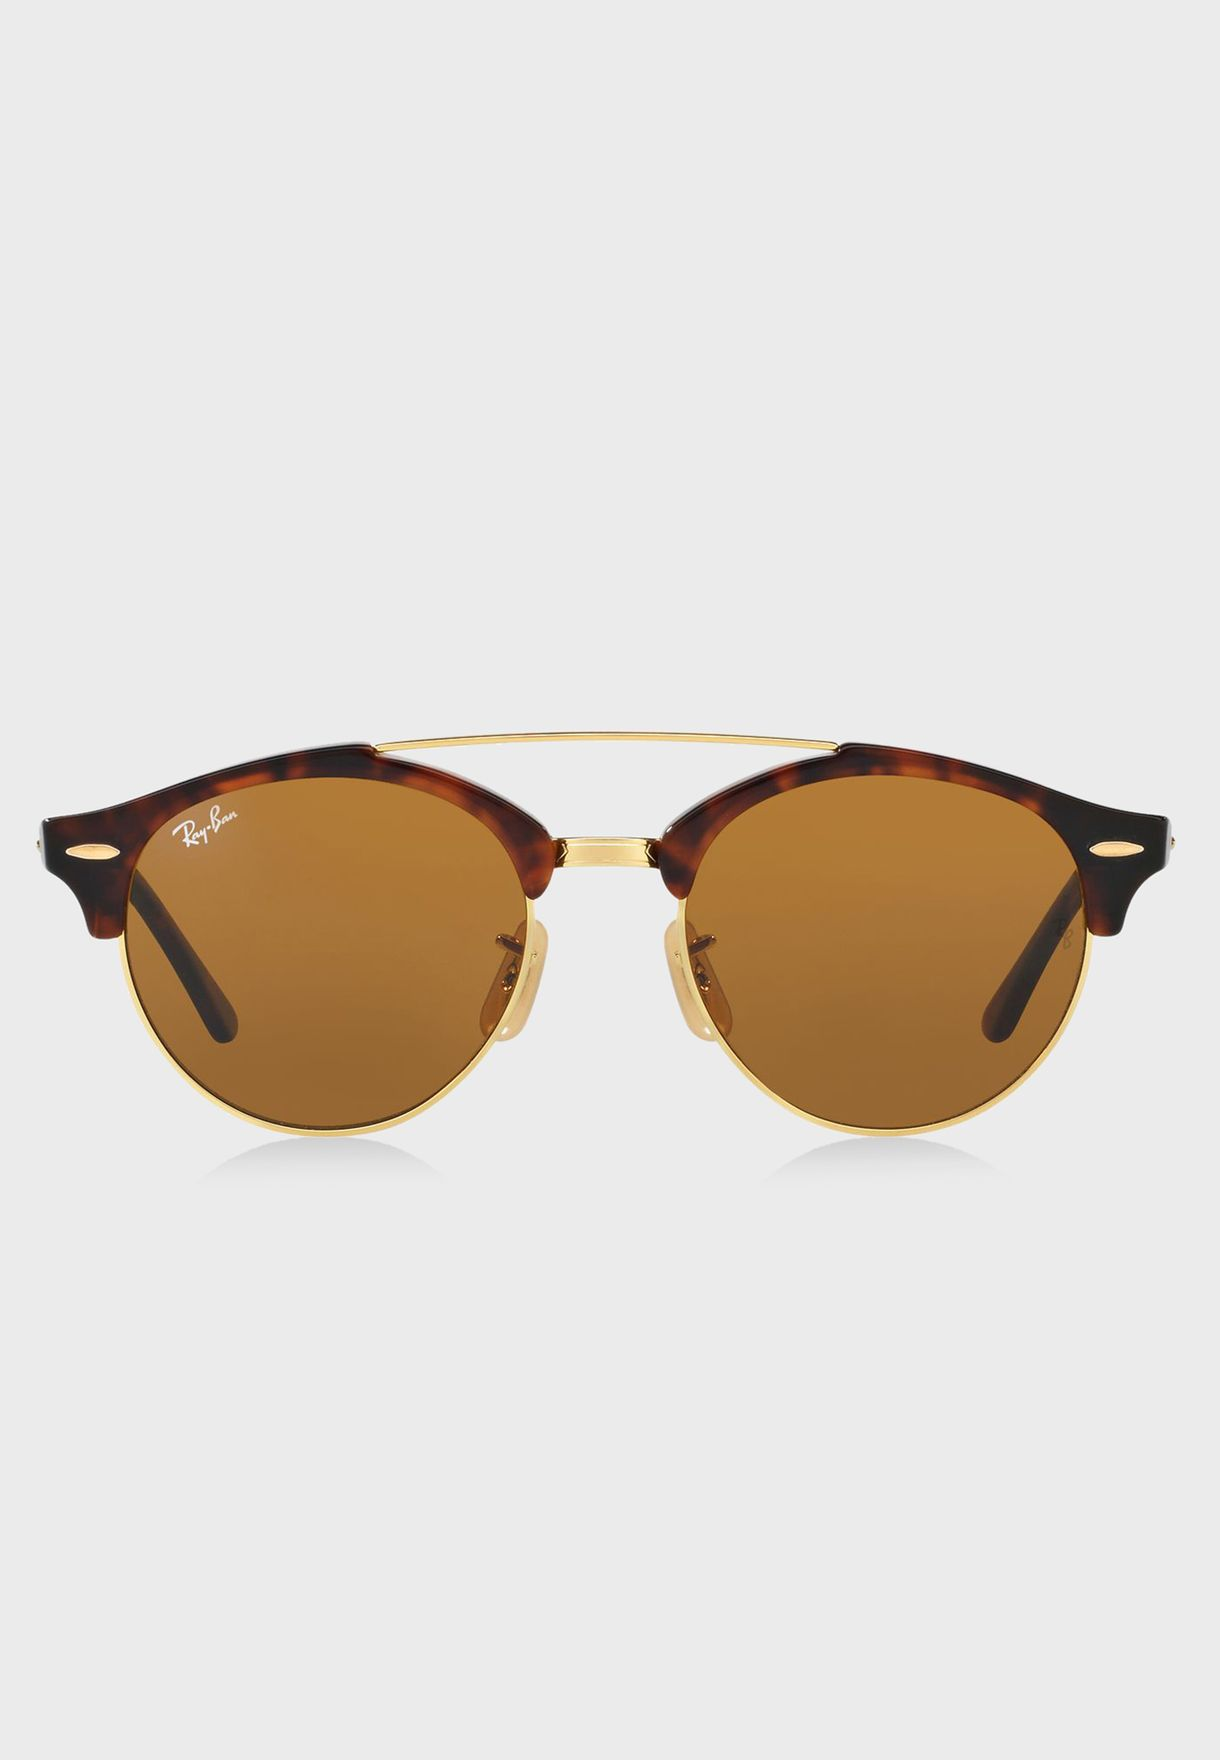 eed63a9c5f Shop Ray-Ban browns Clubround Double Bridge Sunglasses for Women in Bahrain  - RA736AC38SNT